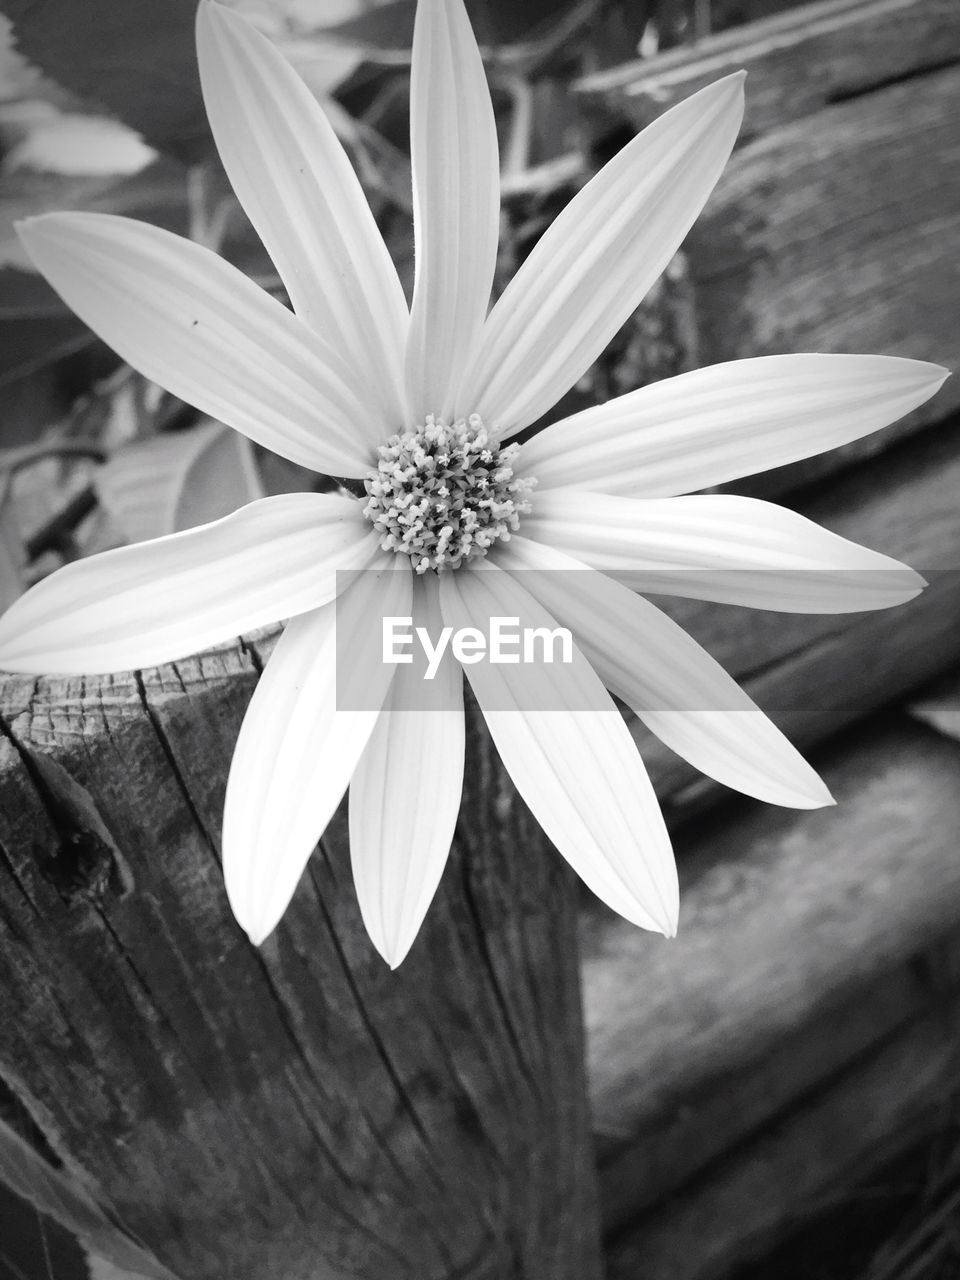 flower, petal, flower head, fragility, freshness, nature, pollen, beauty in nature, blooming, no people, close-up, osteospermum, day, outdoors, growth